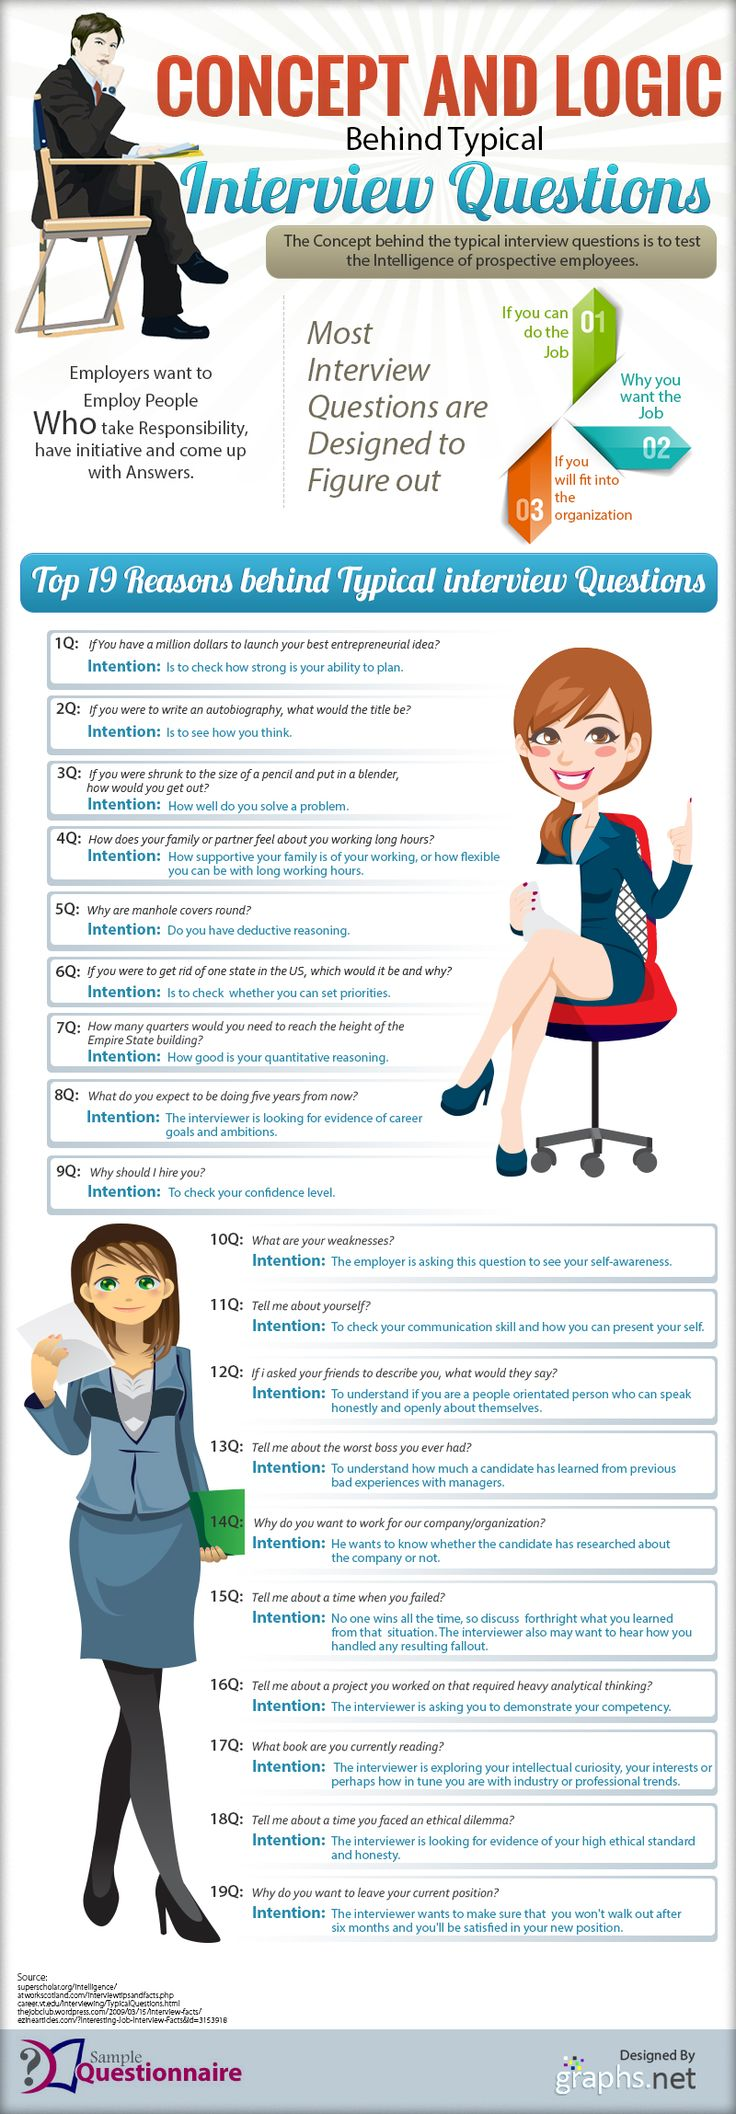 143 best Jobs images on Pinterest | Job description, Business ...